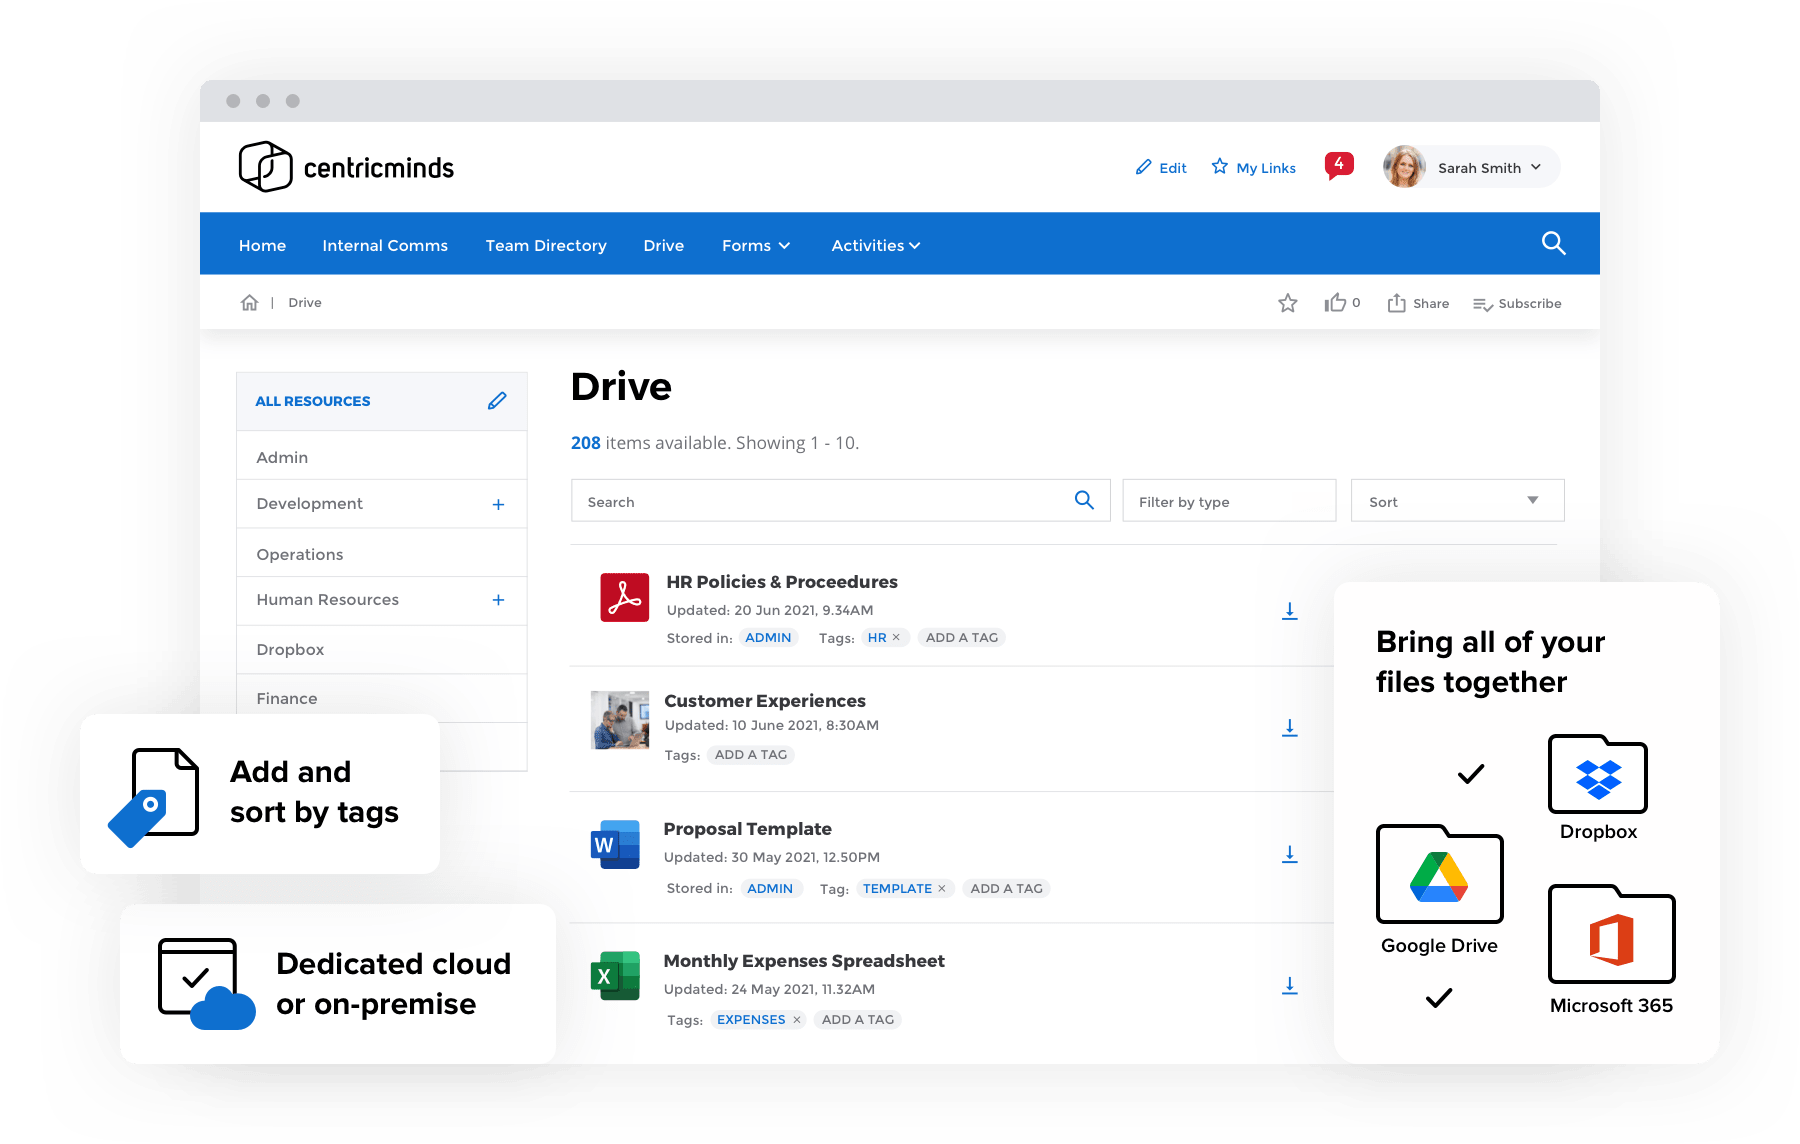 CentricMinds File Sharing & Management